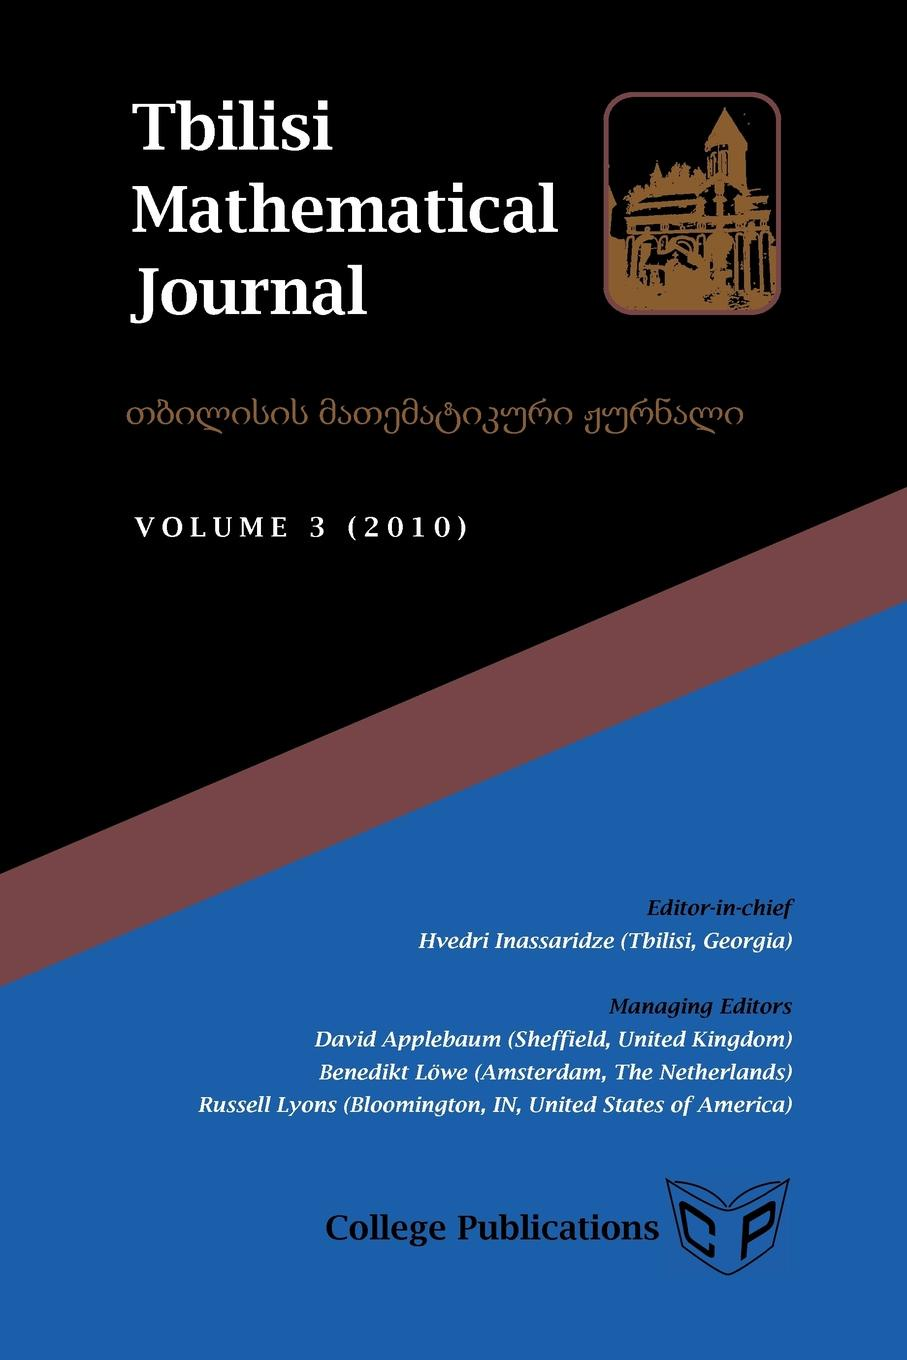 Tbilisi Mathematical Journal Volume 3 (2010) reports of the survey botanical series volume 9